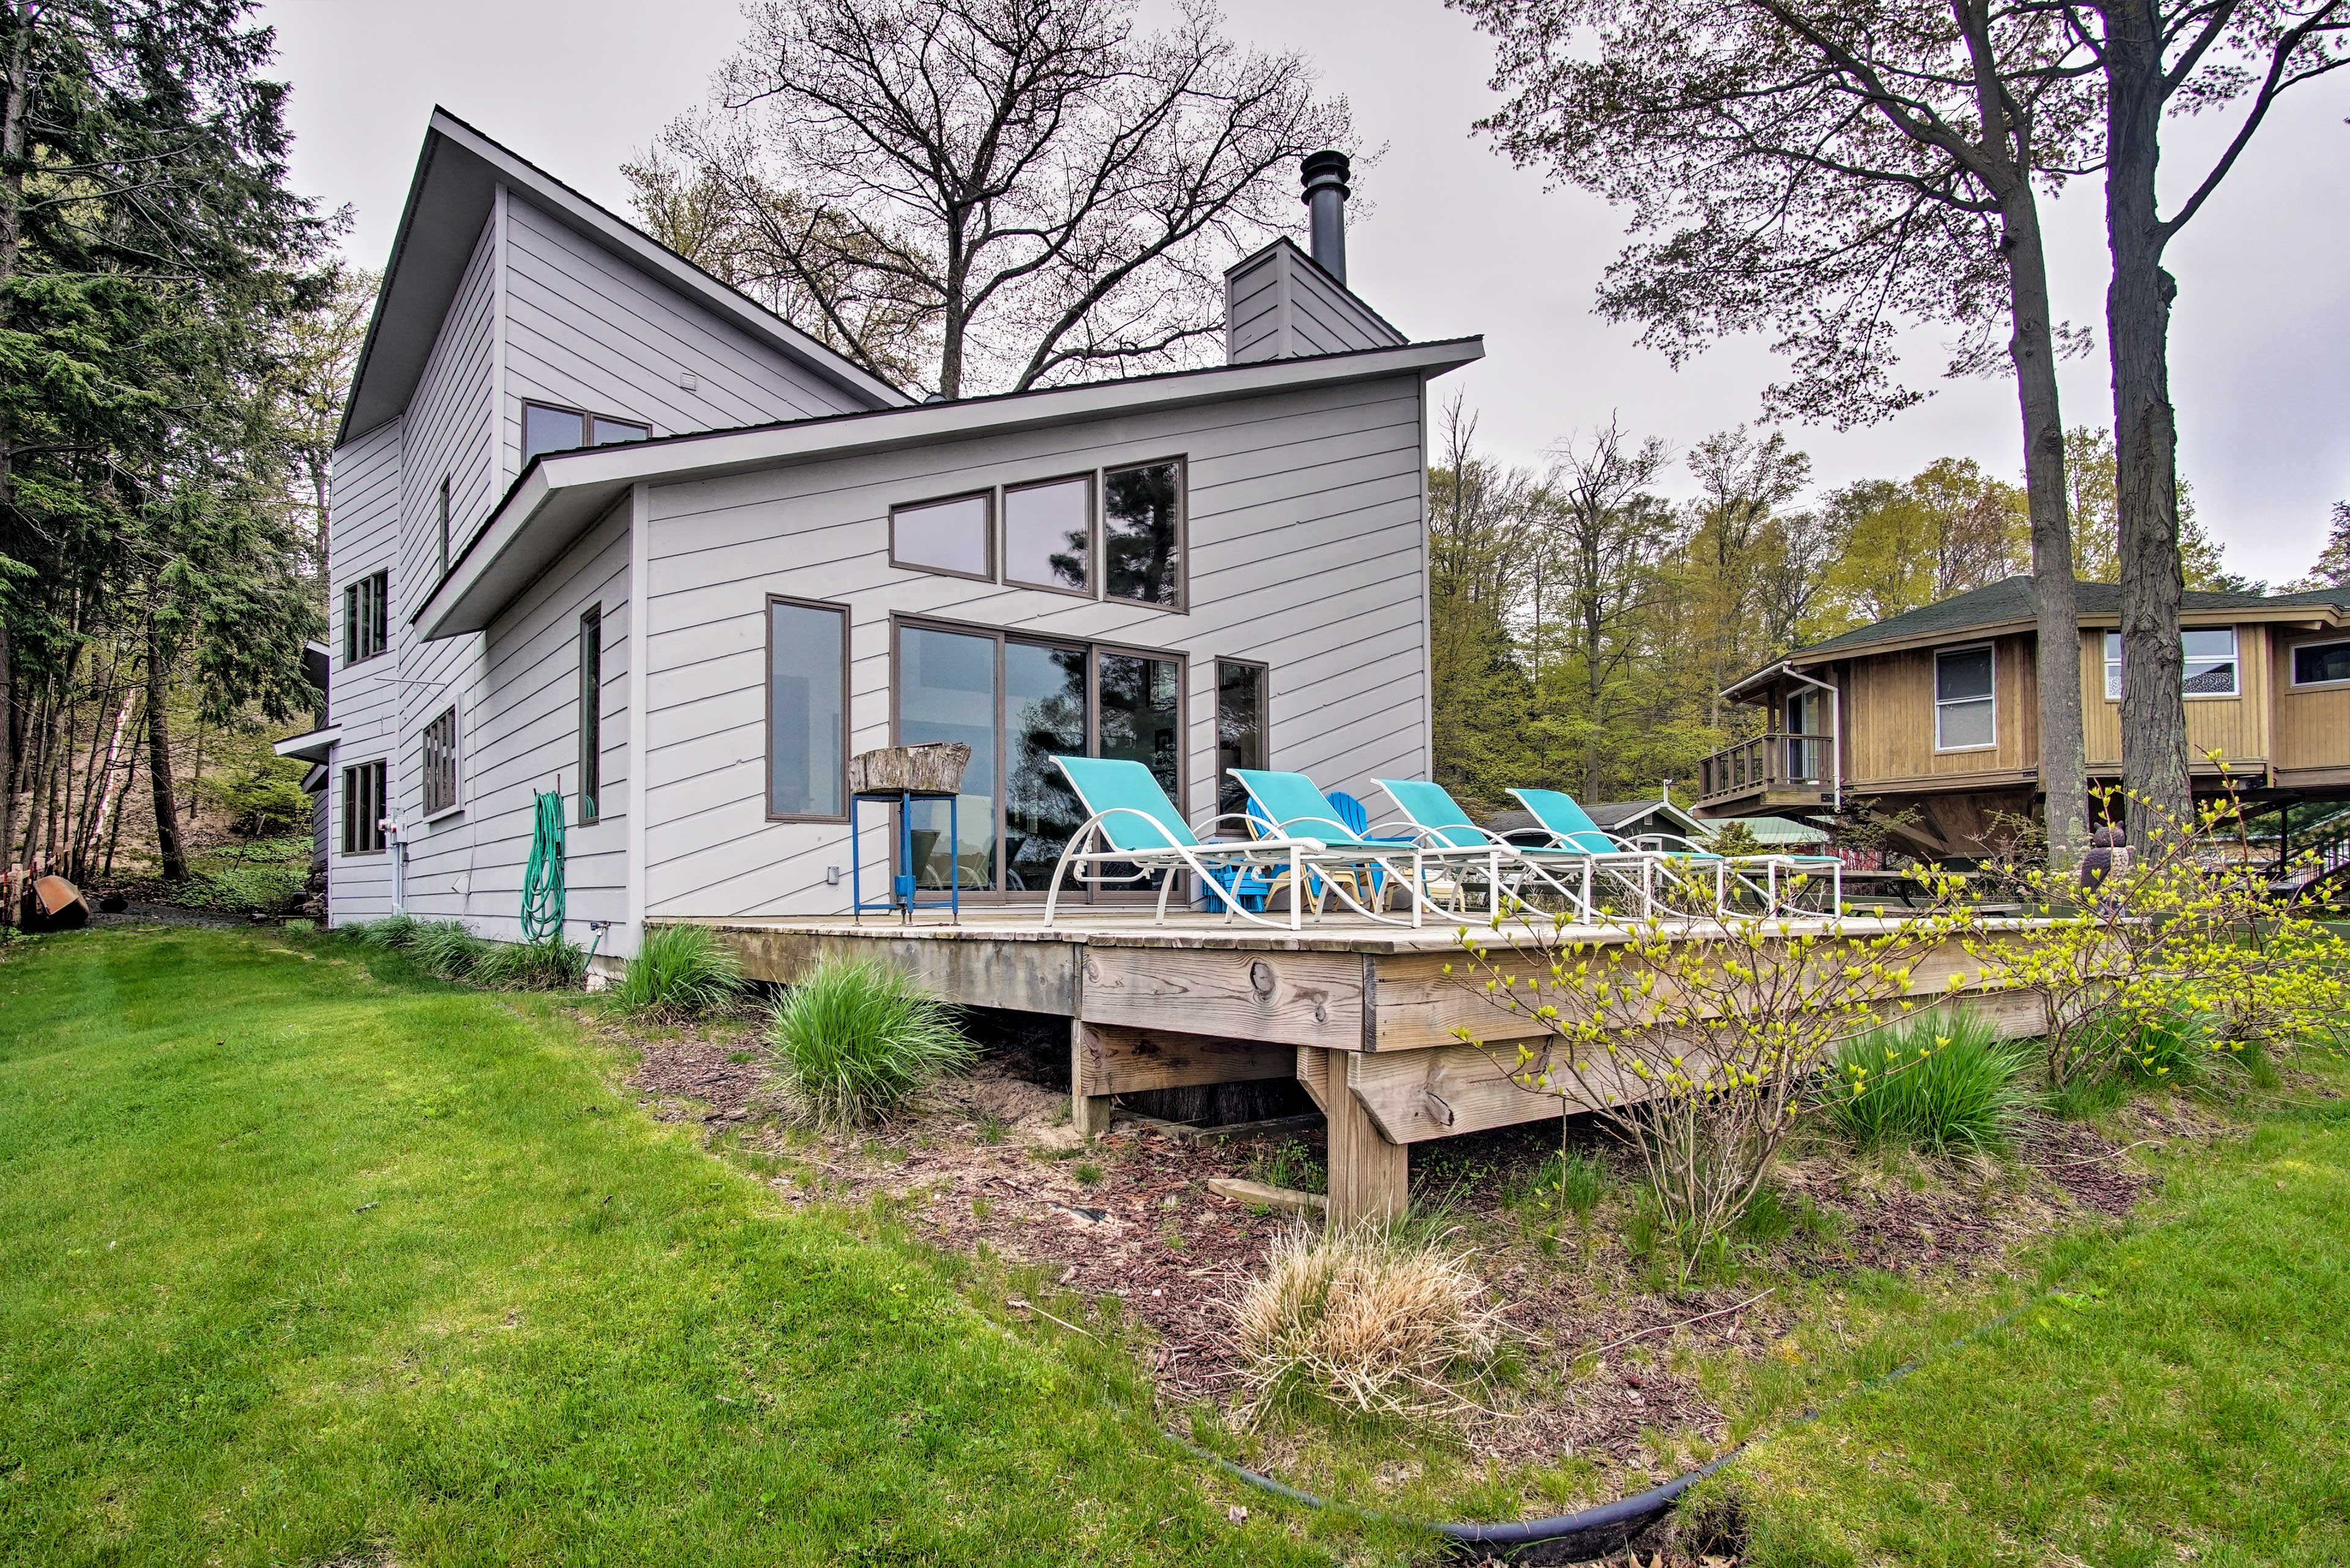 This 5 bedroom, 2.5-bath vacation rental offers plenty of space for guests!